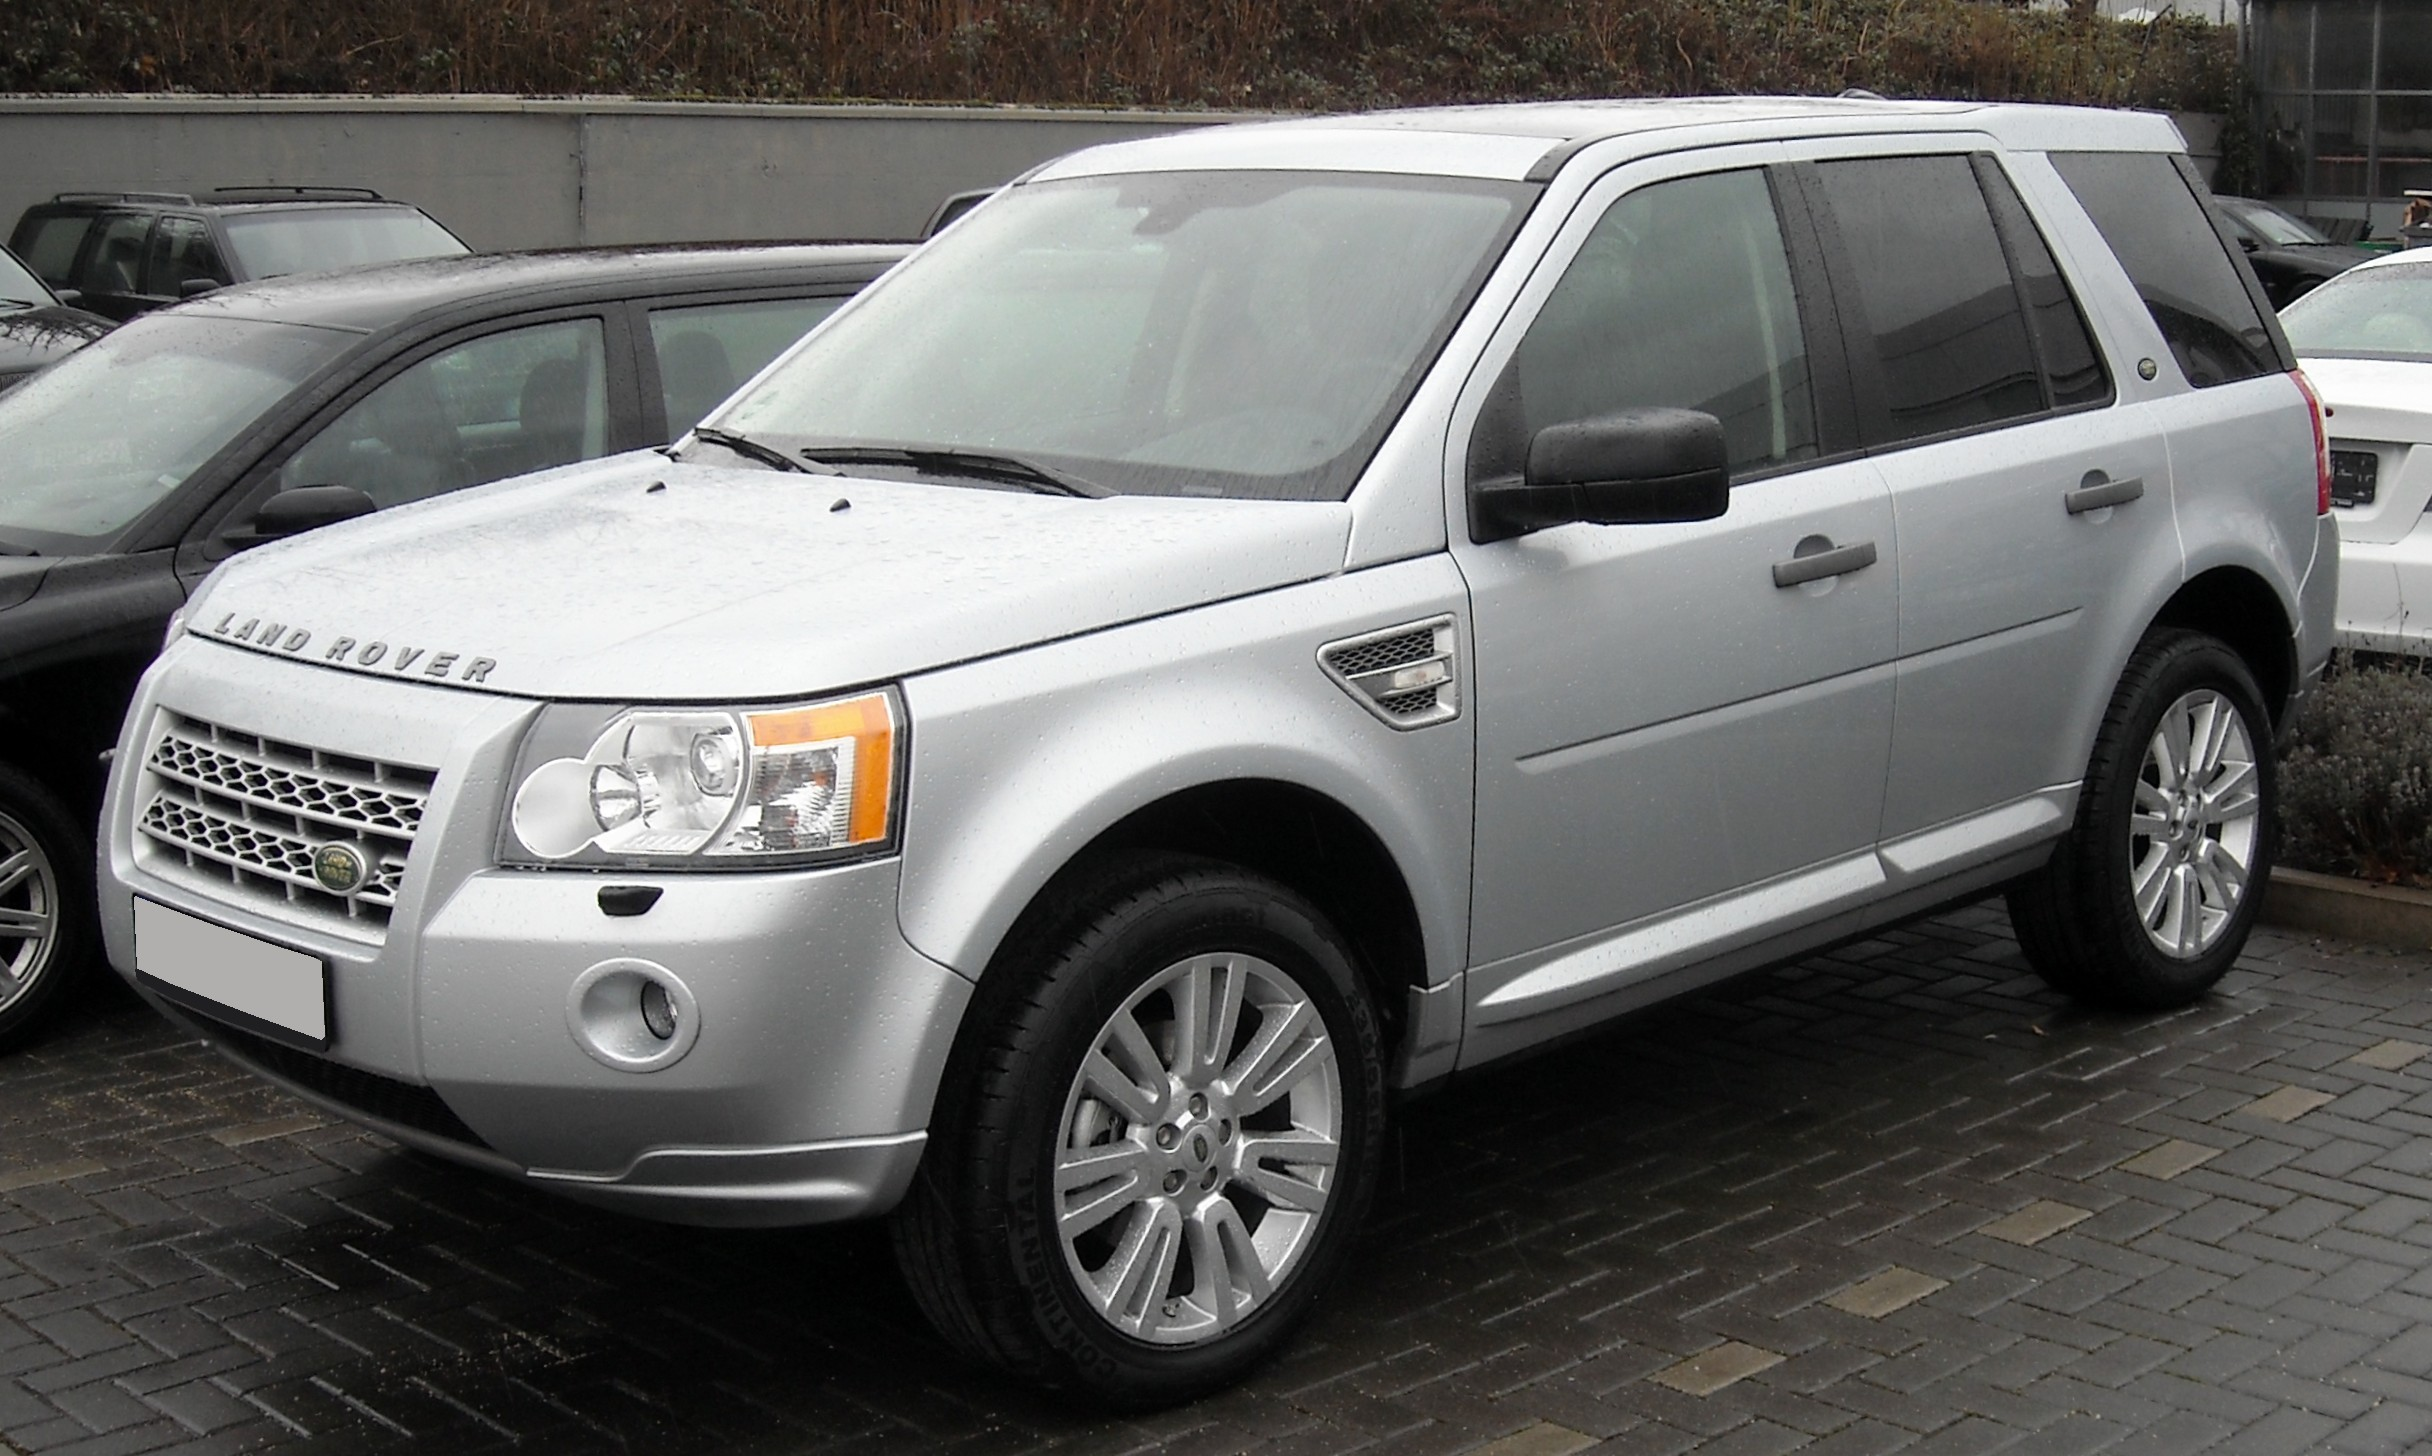 Spy pictures of the Land Rover Freelander from Sweden circulated